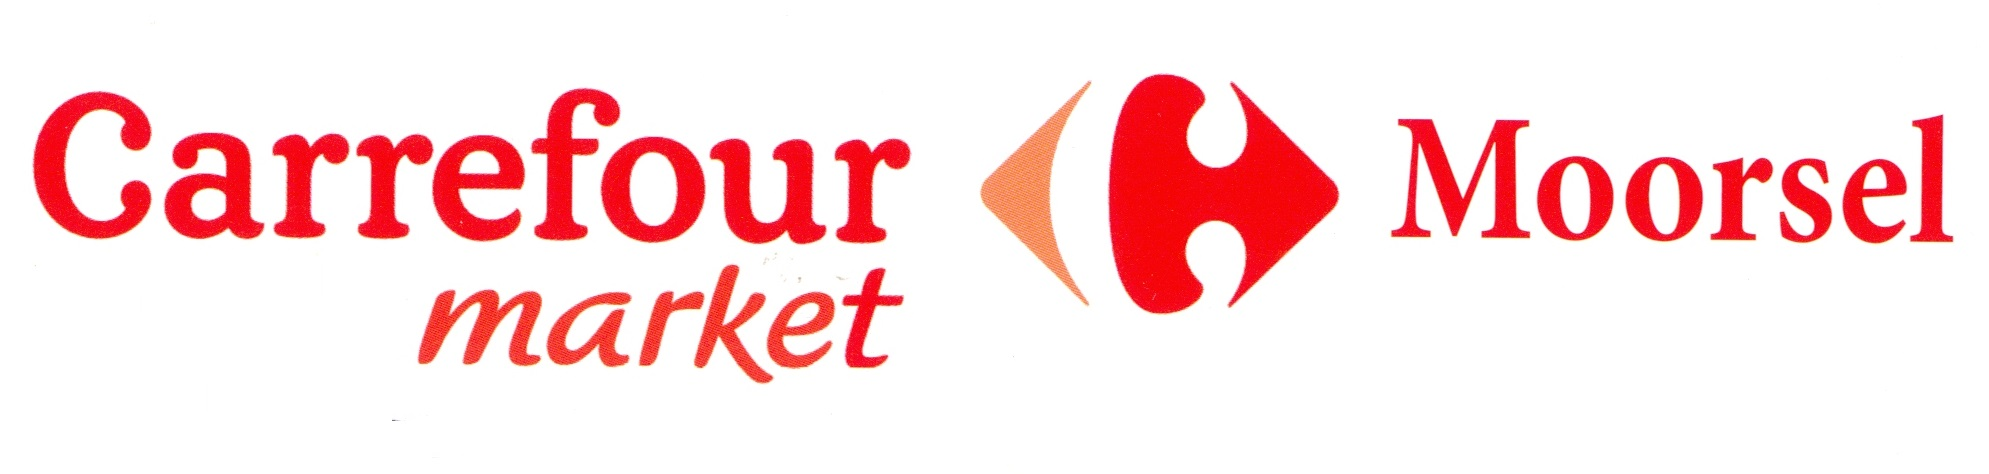 Carrefour Market Moorsel